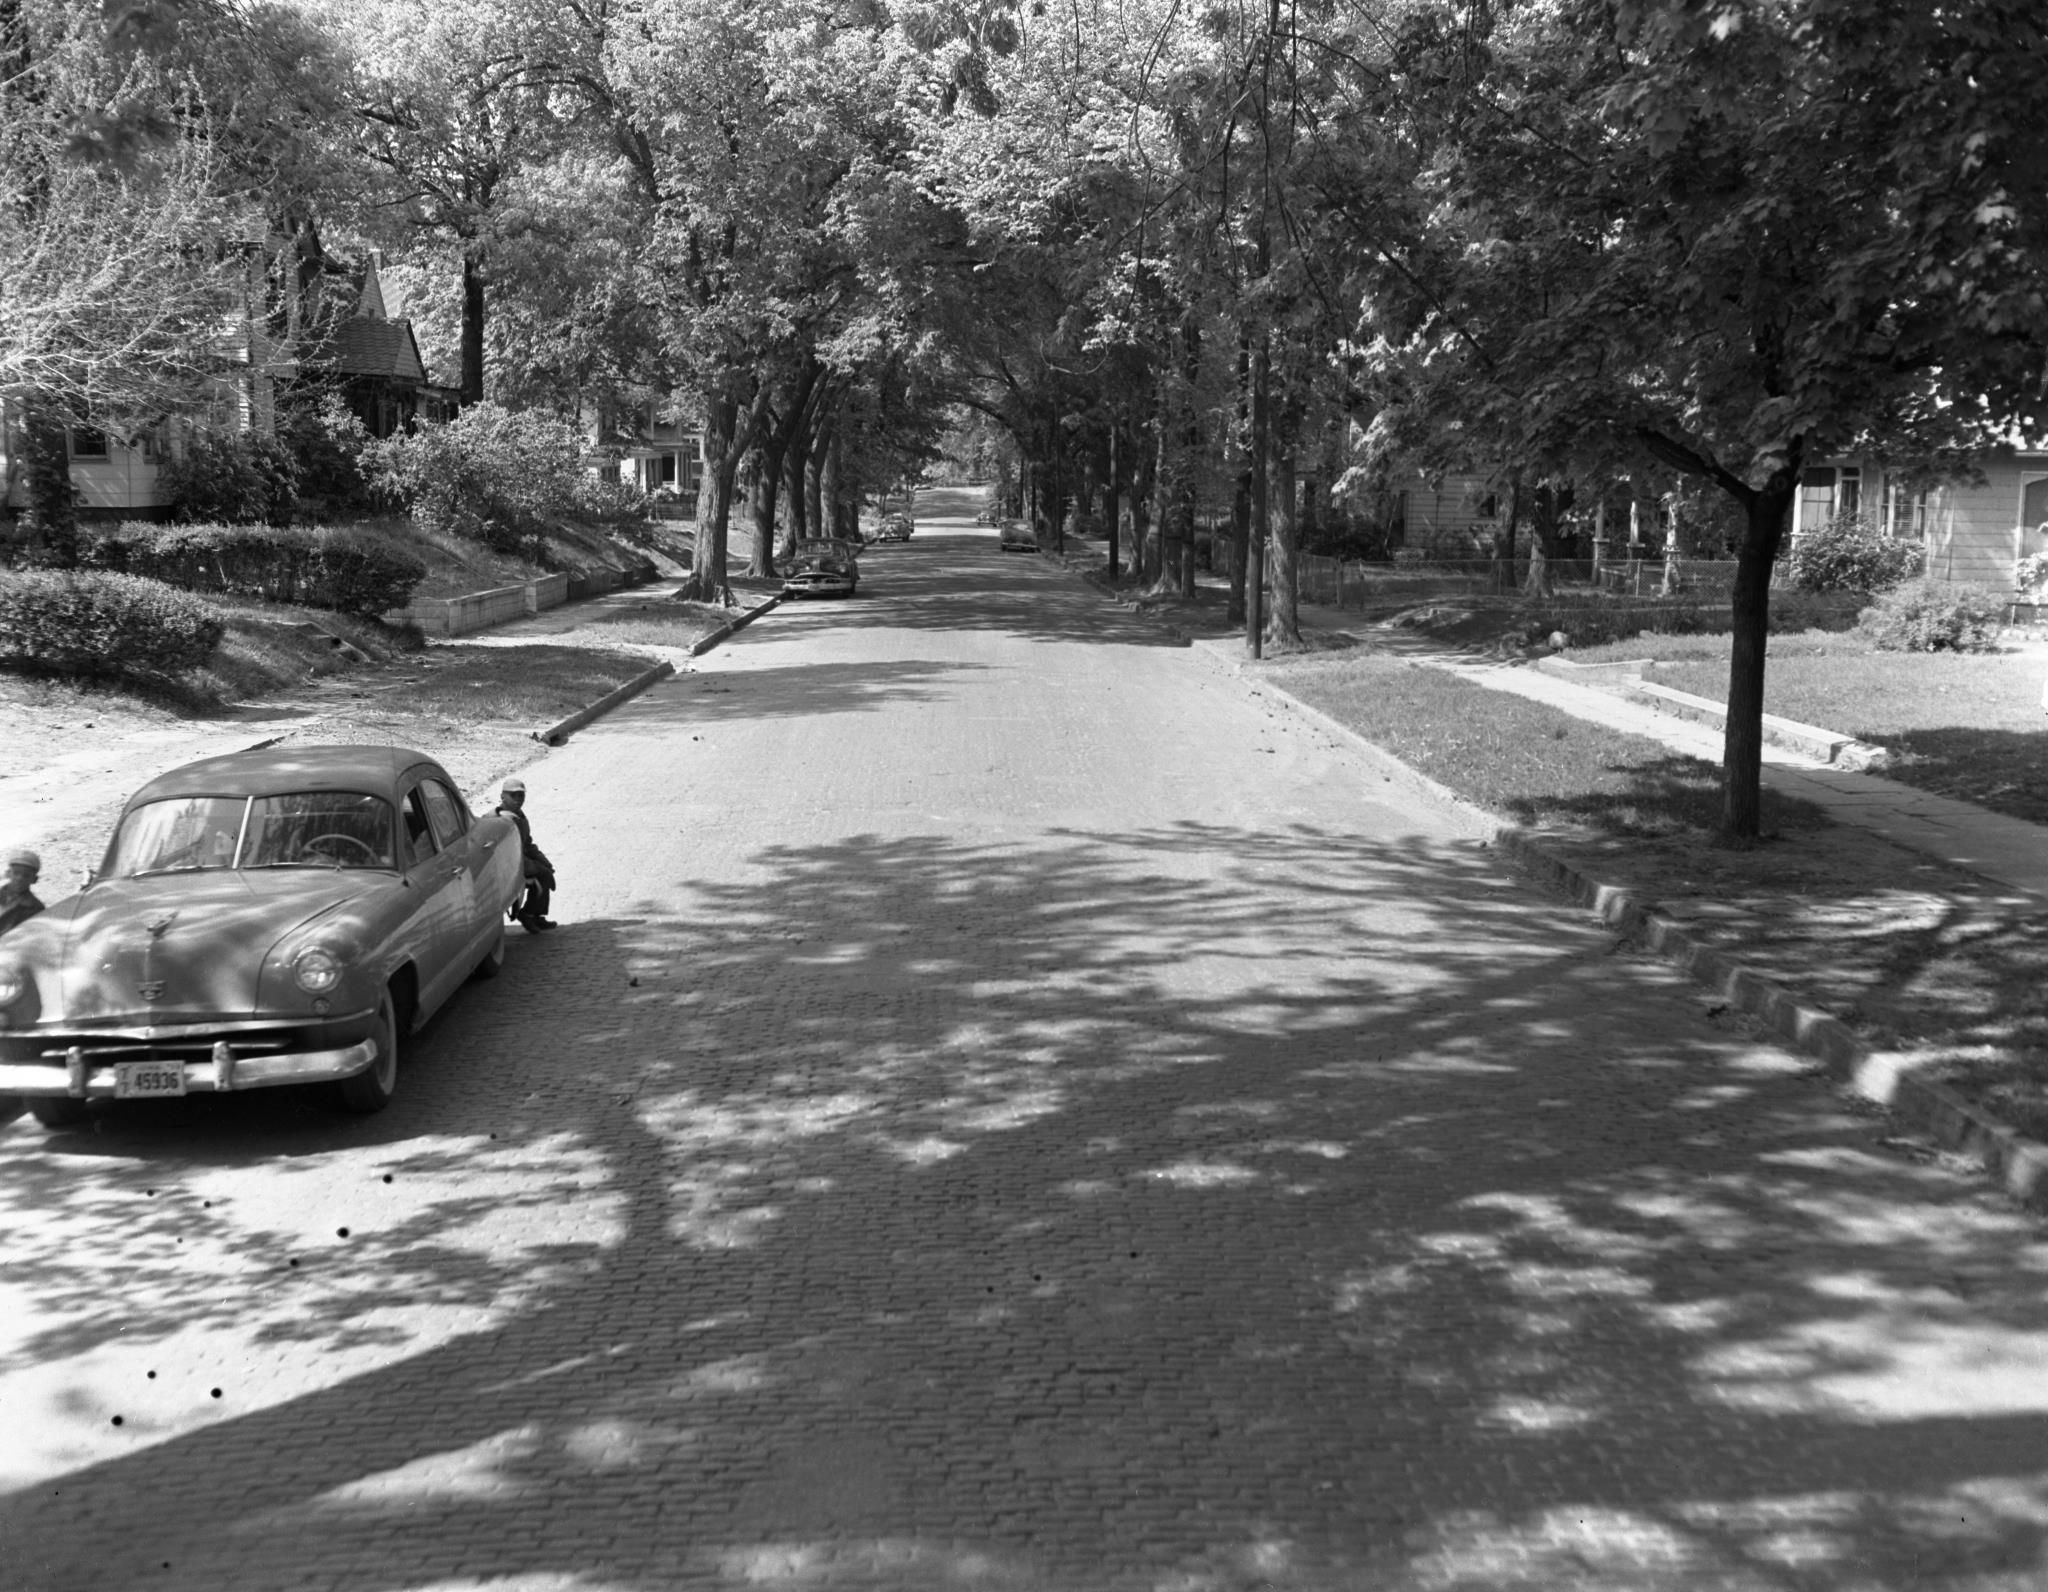 Brick Streets Typical In Many In Des Moines Neighborhoods 1950 S